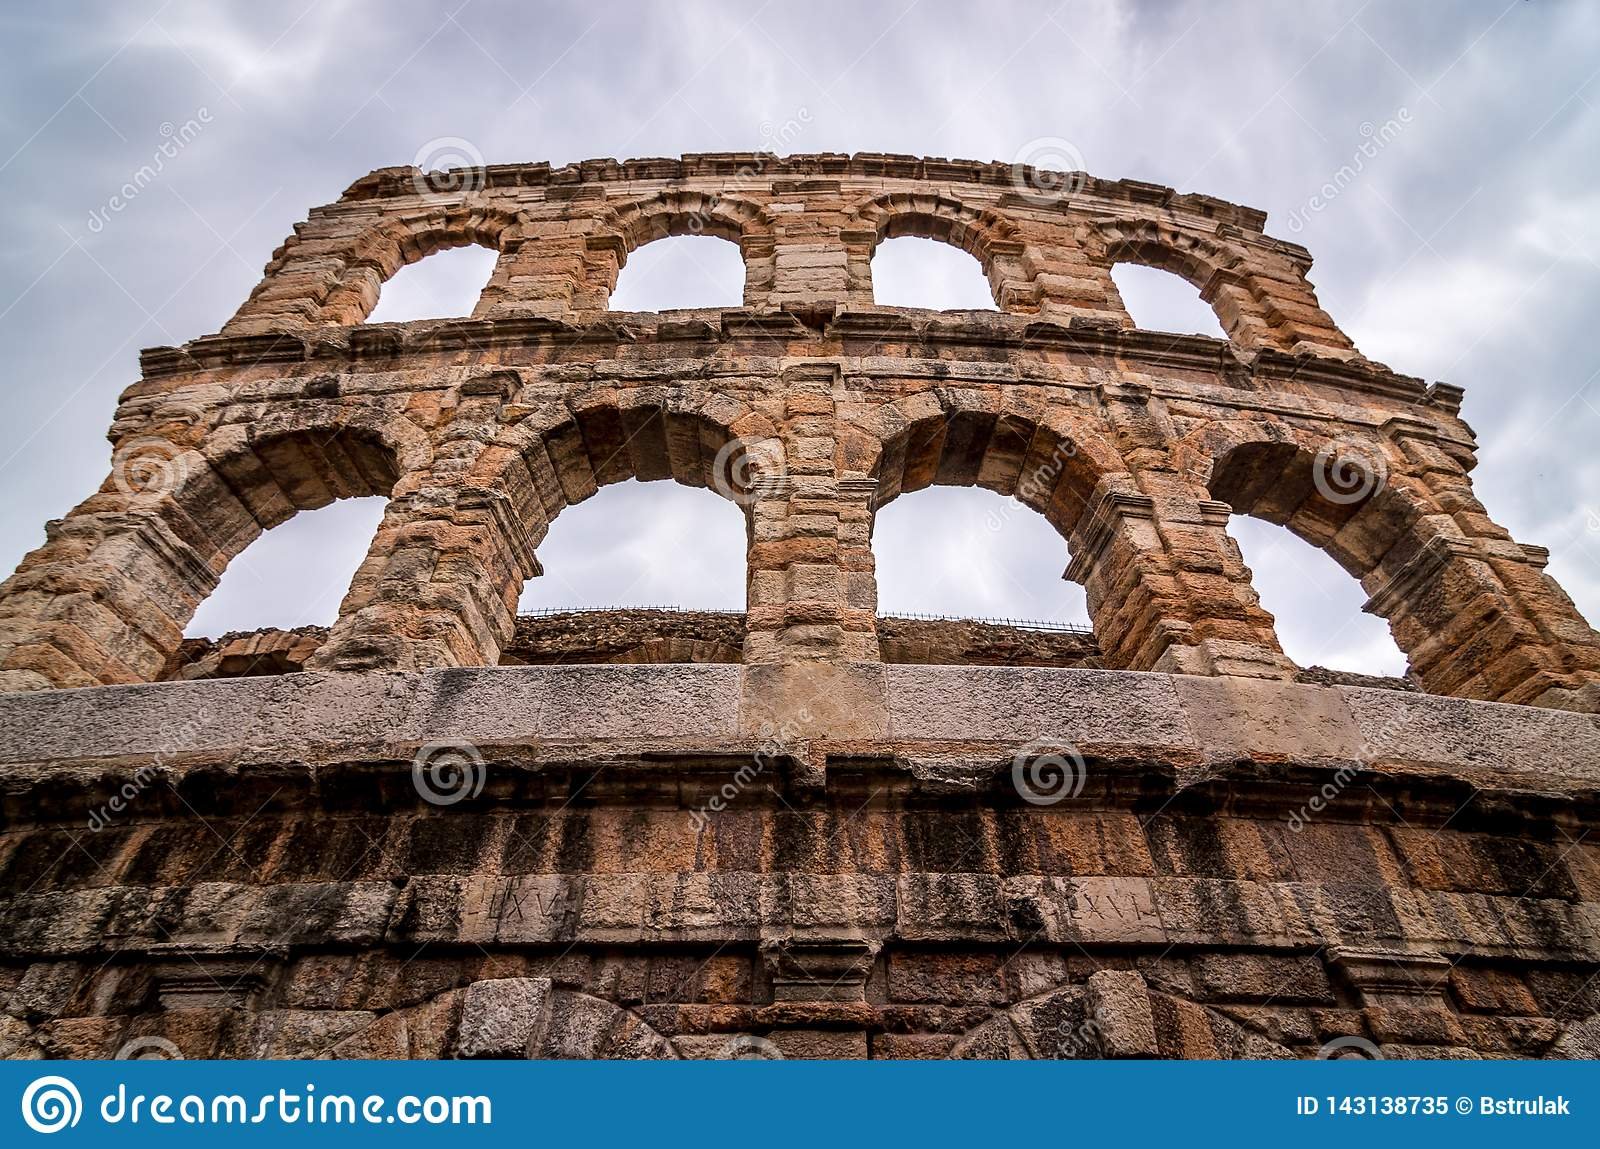 Verona, Italy. The Verona Arena is a Roman amphitheater in the city center, built in the first century